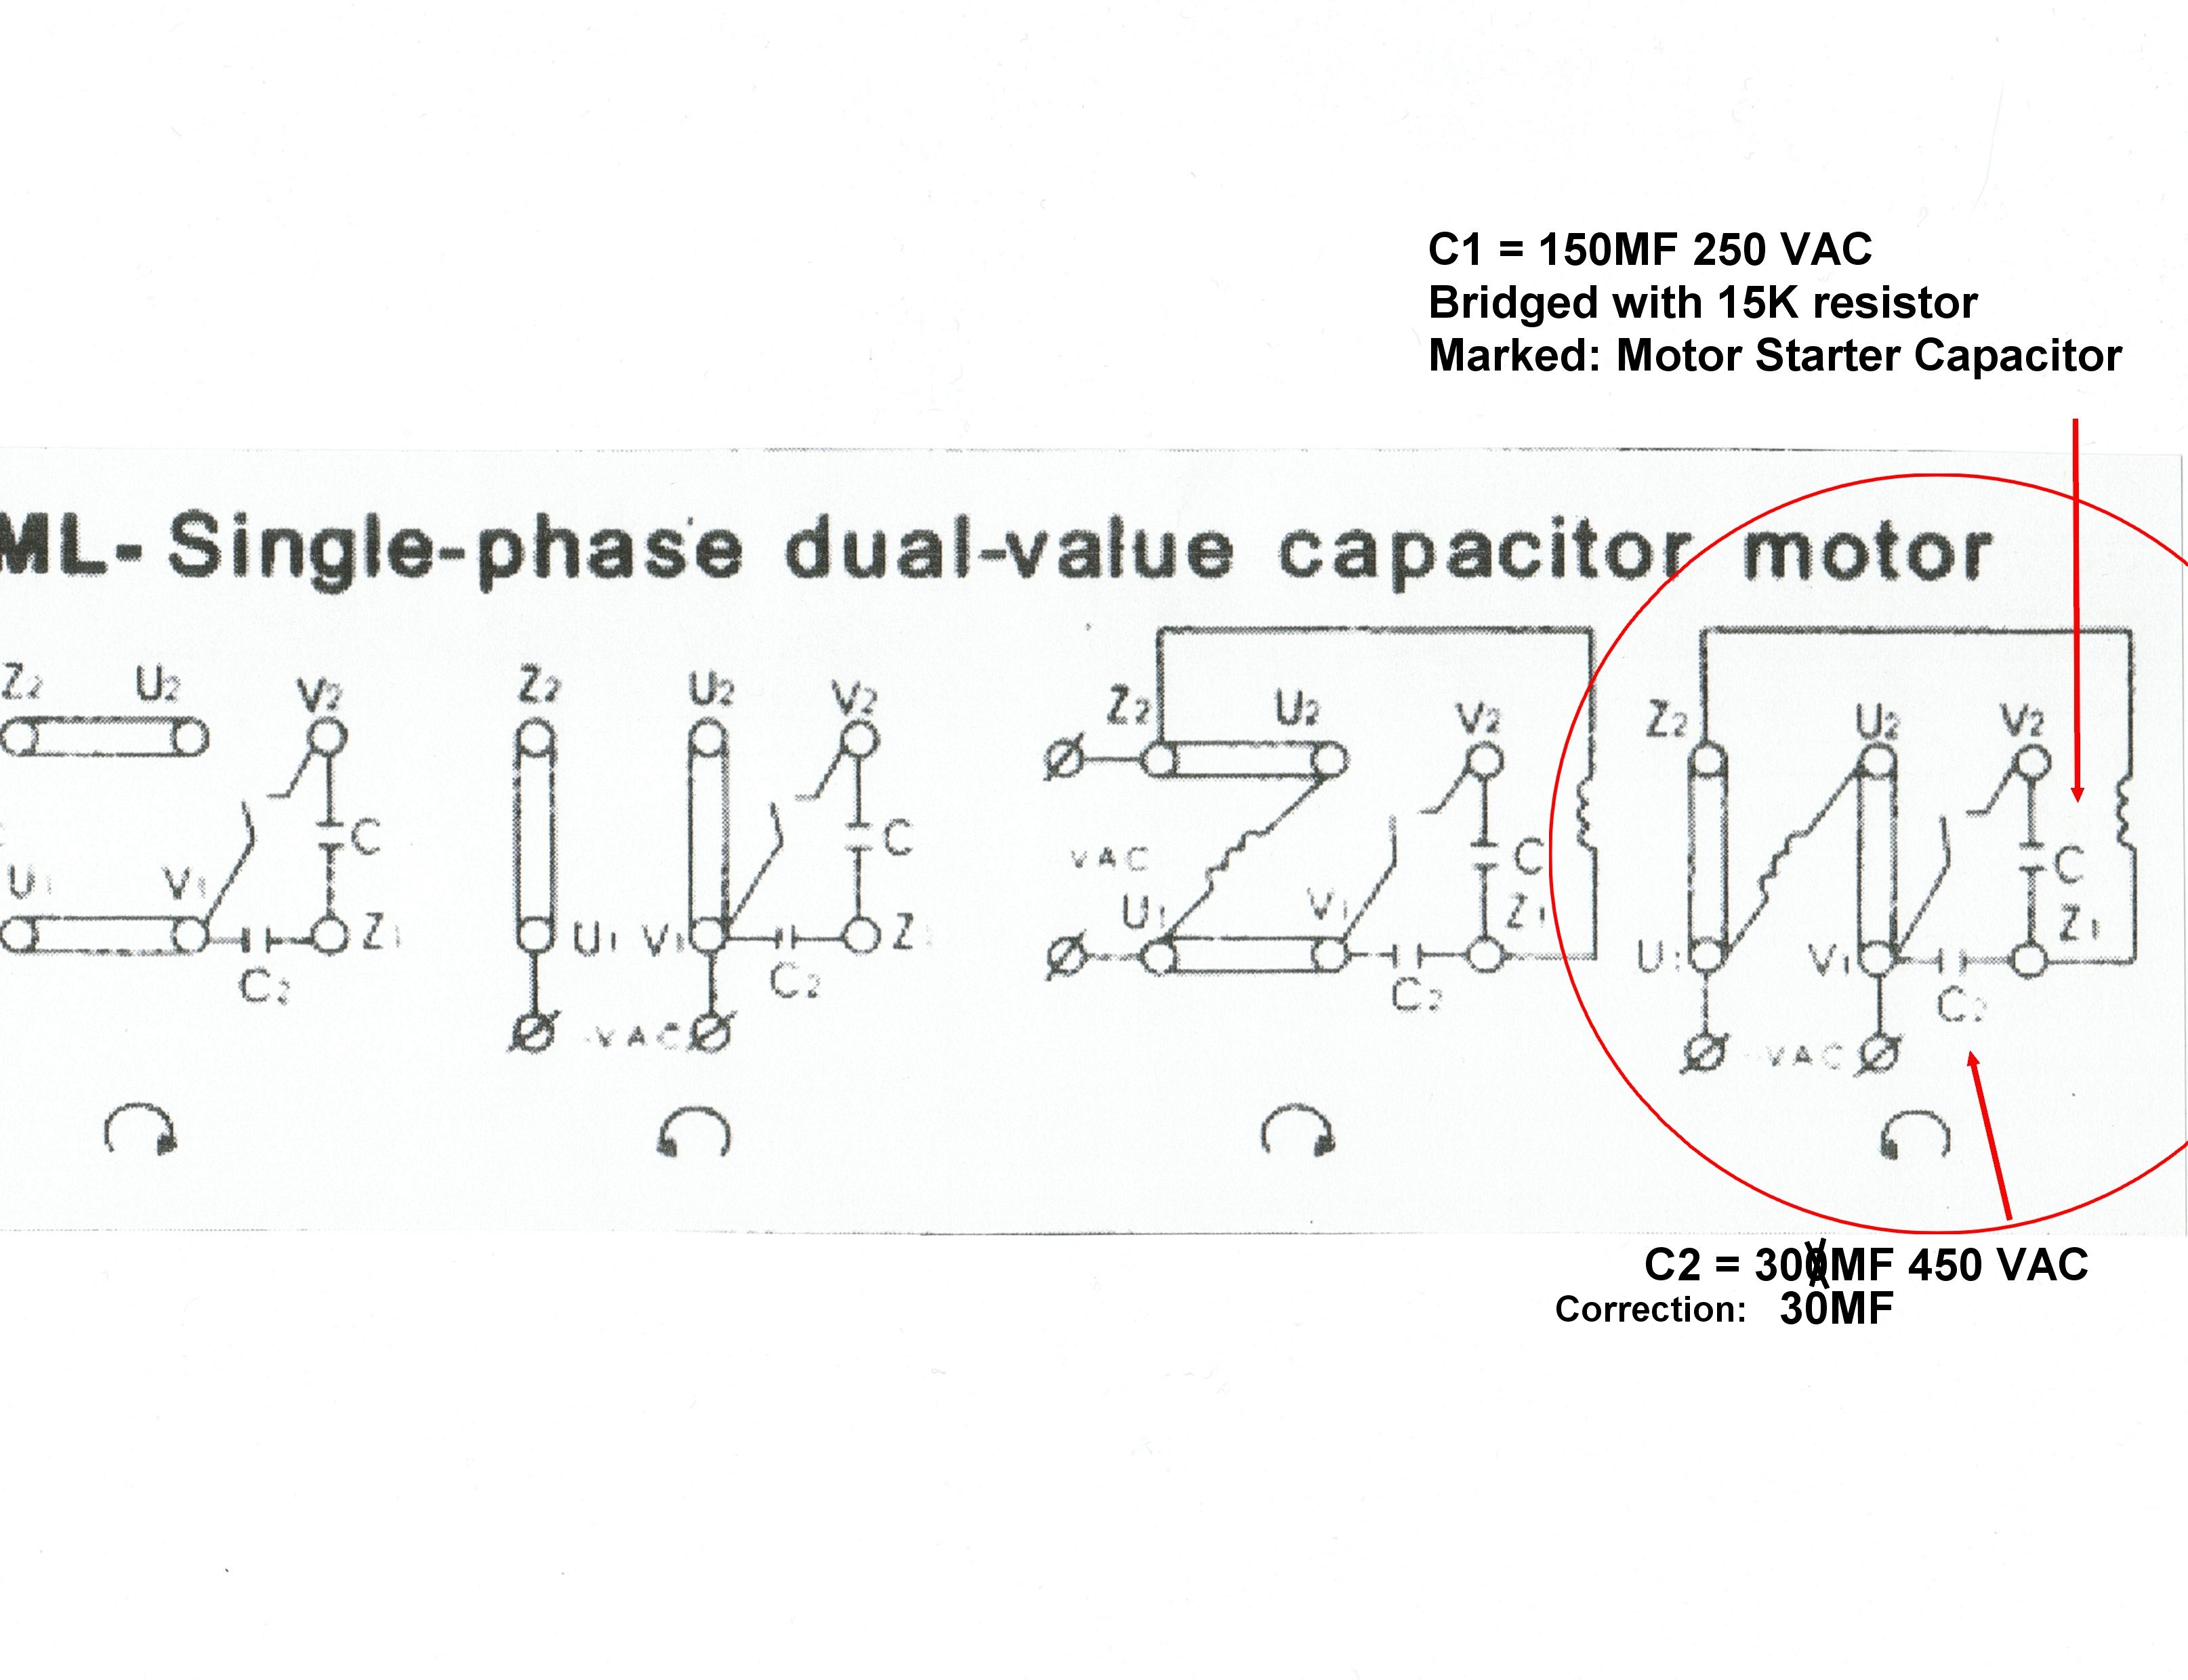 Table saw electric motor capacitor wiring diagram diy wiring solved slow start 220v single phase induction motor rh edaboard com basic electric motor wiring single phase capacitor motor diagrams keyboard keysfo Gallery